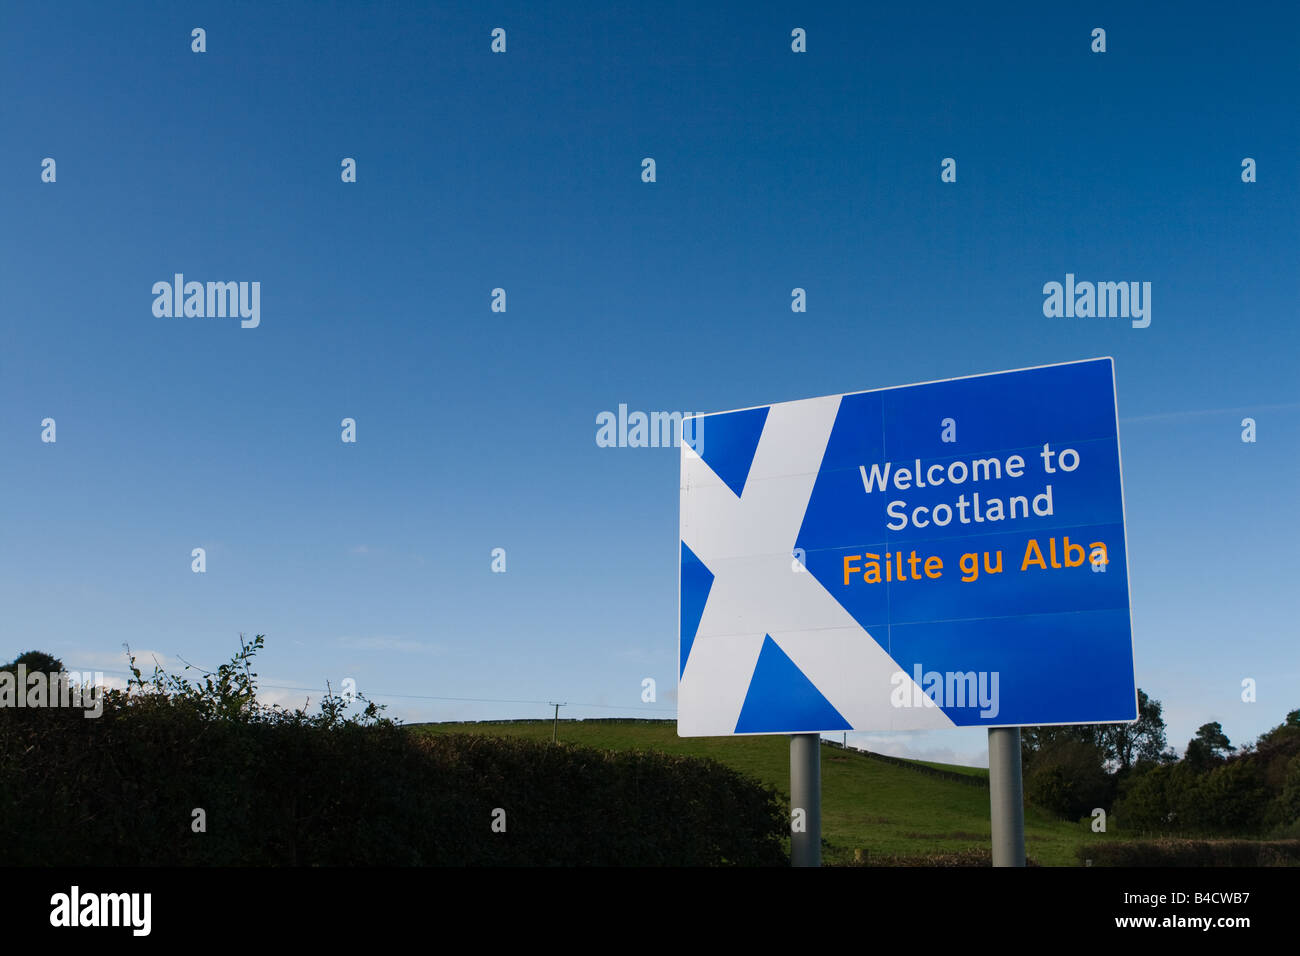 Welcome to Scotland Sign - Stock Image